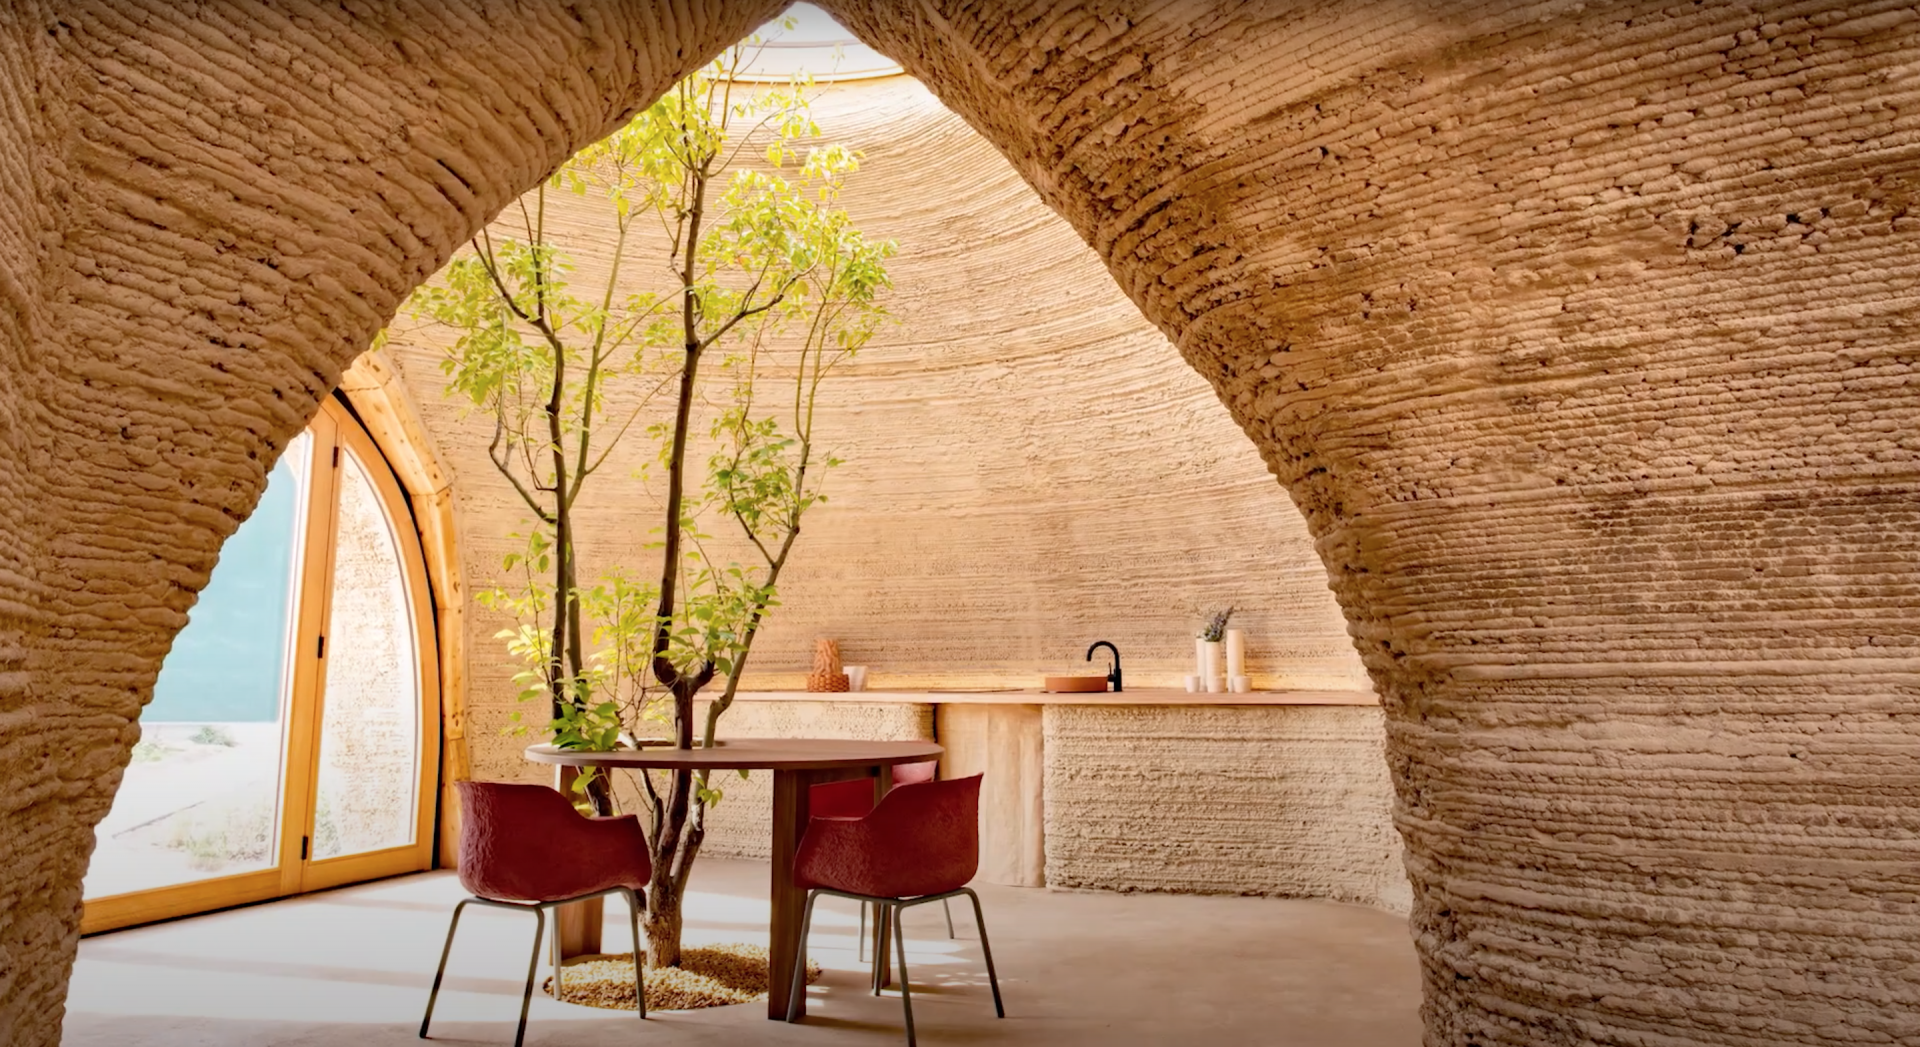 New 3D-Printed Home Looks Like Lars Homestead from STAR WARS